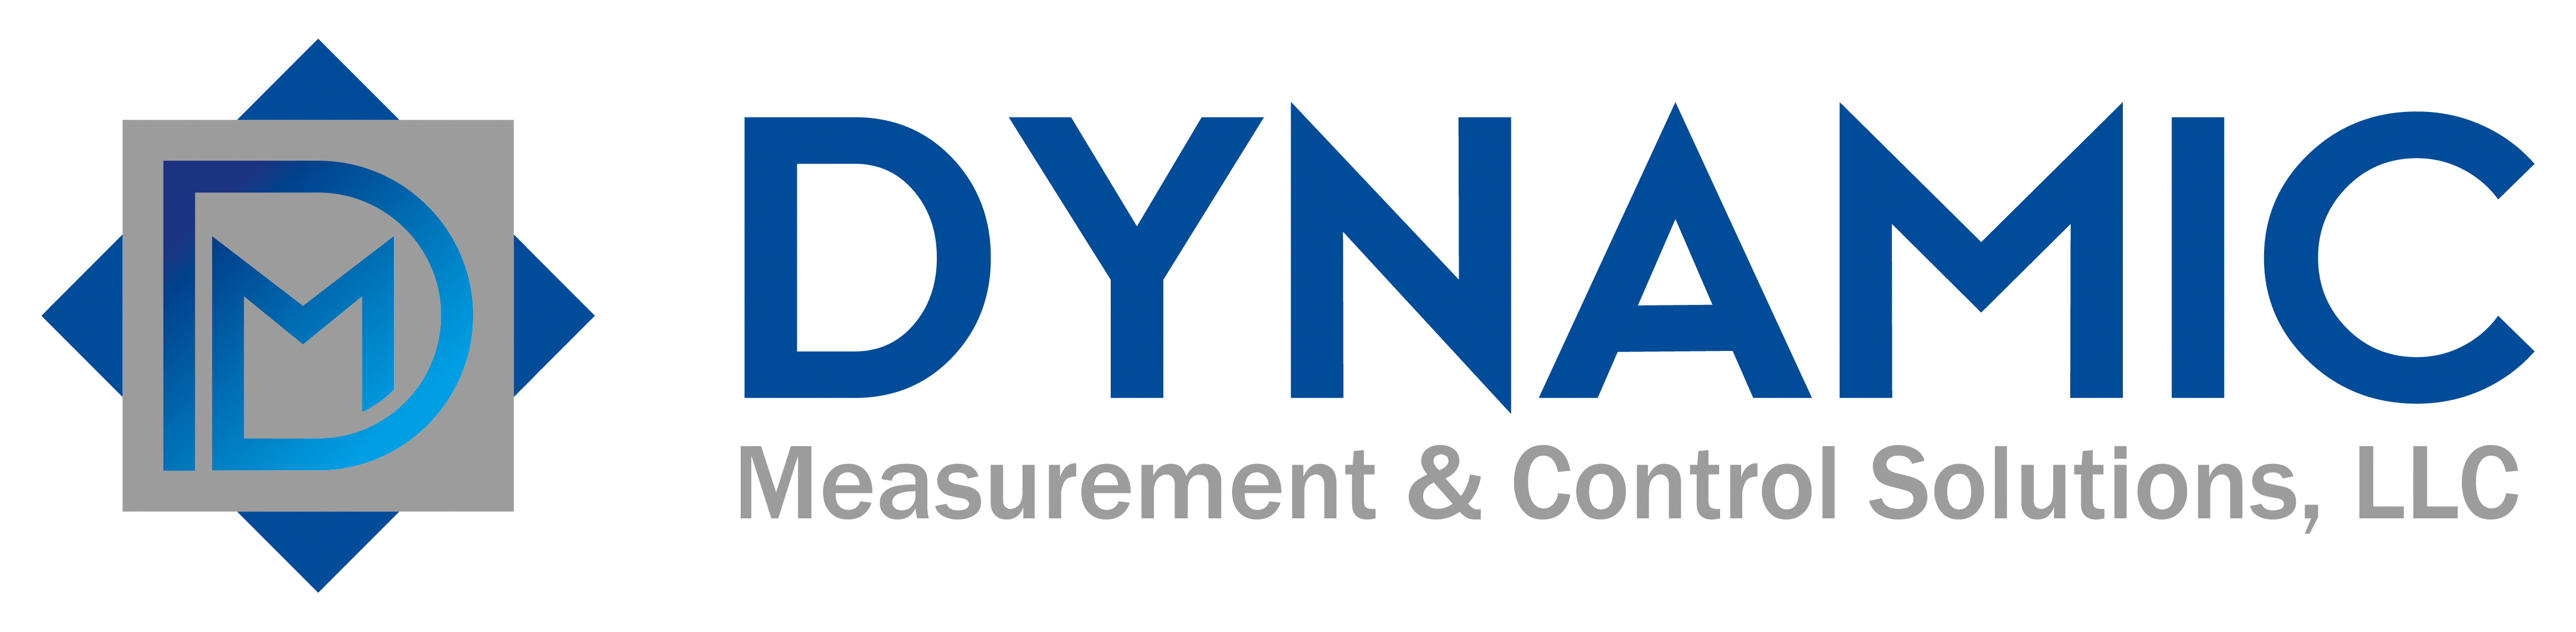 Dynamic Measurement and Control Solutions, LLC